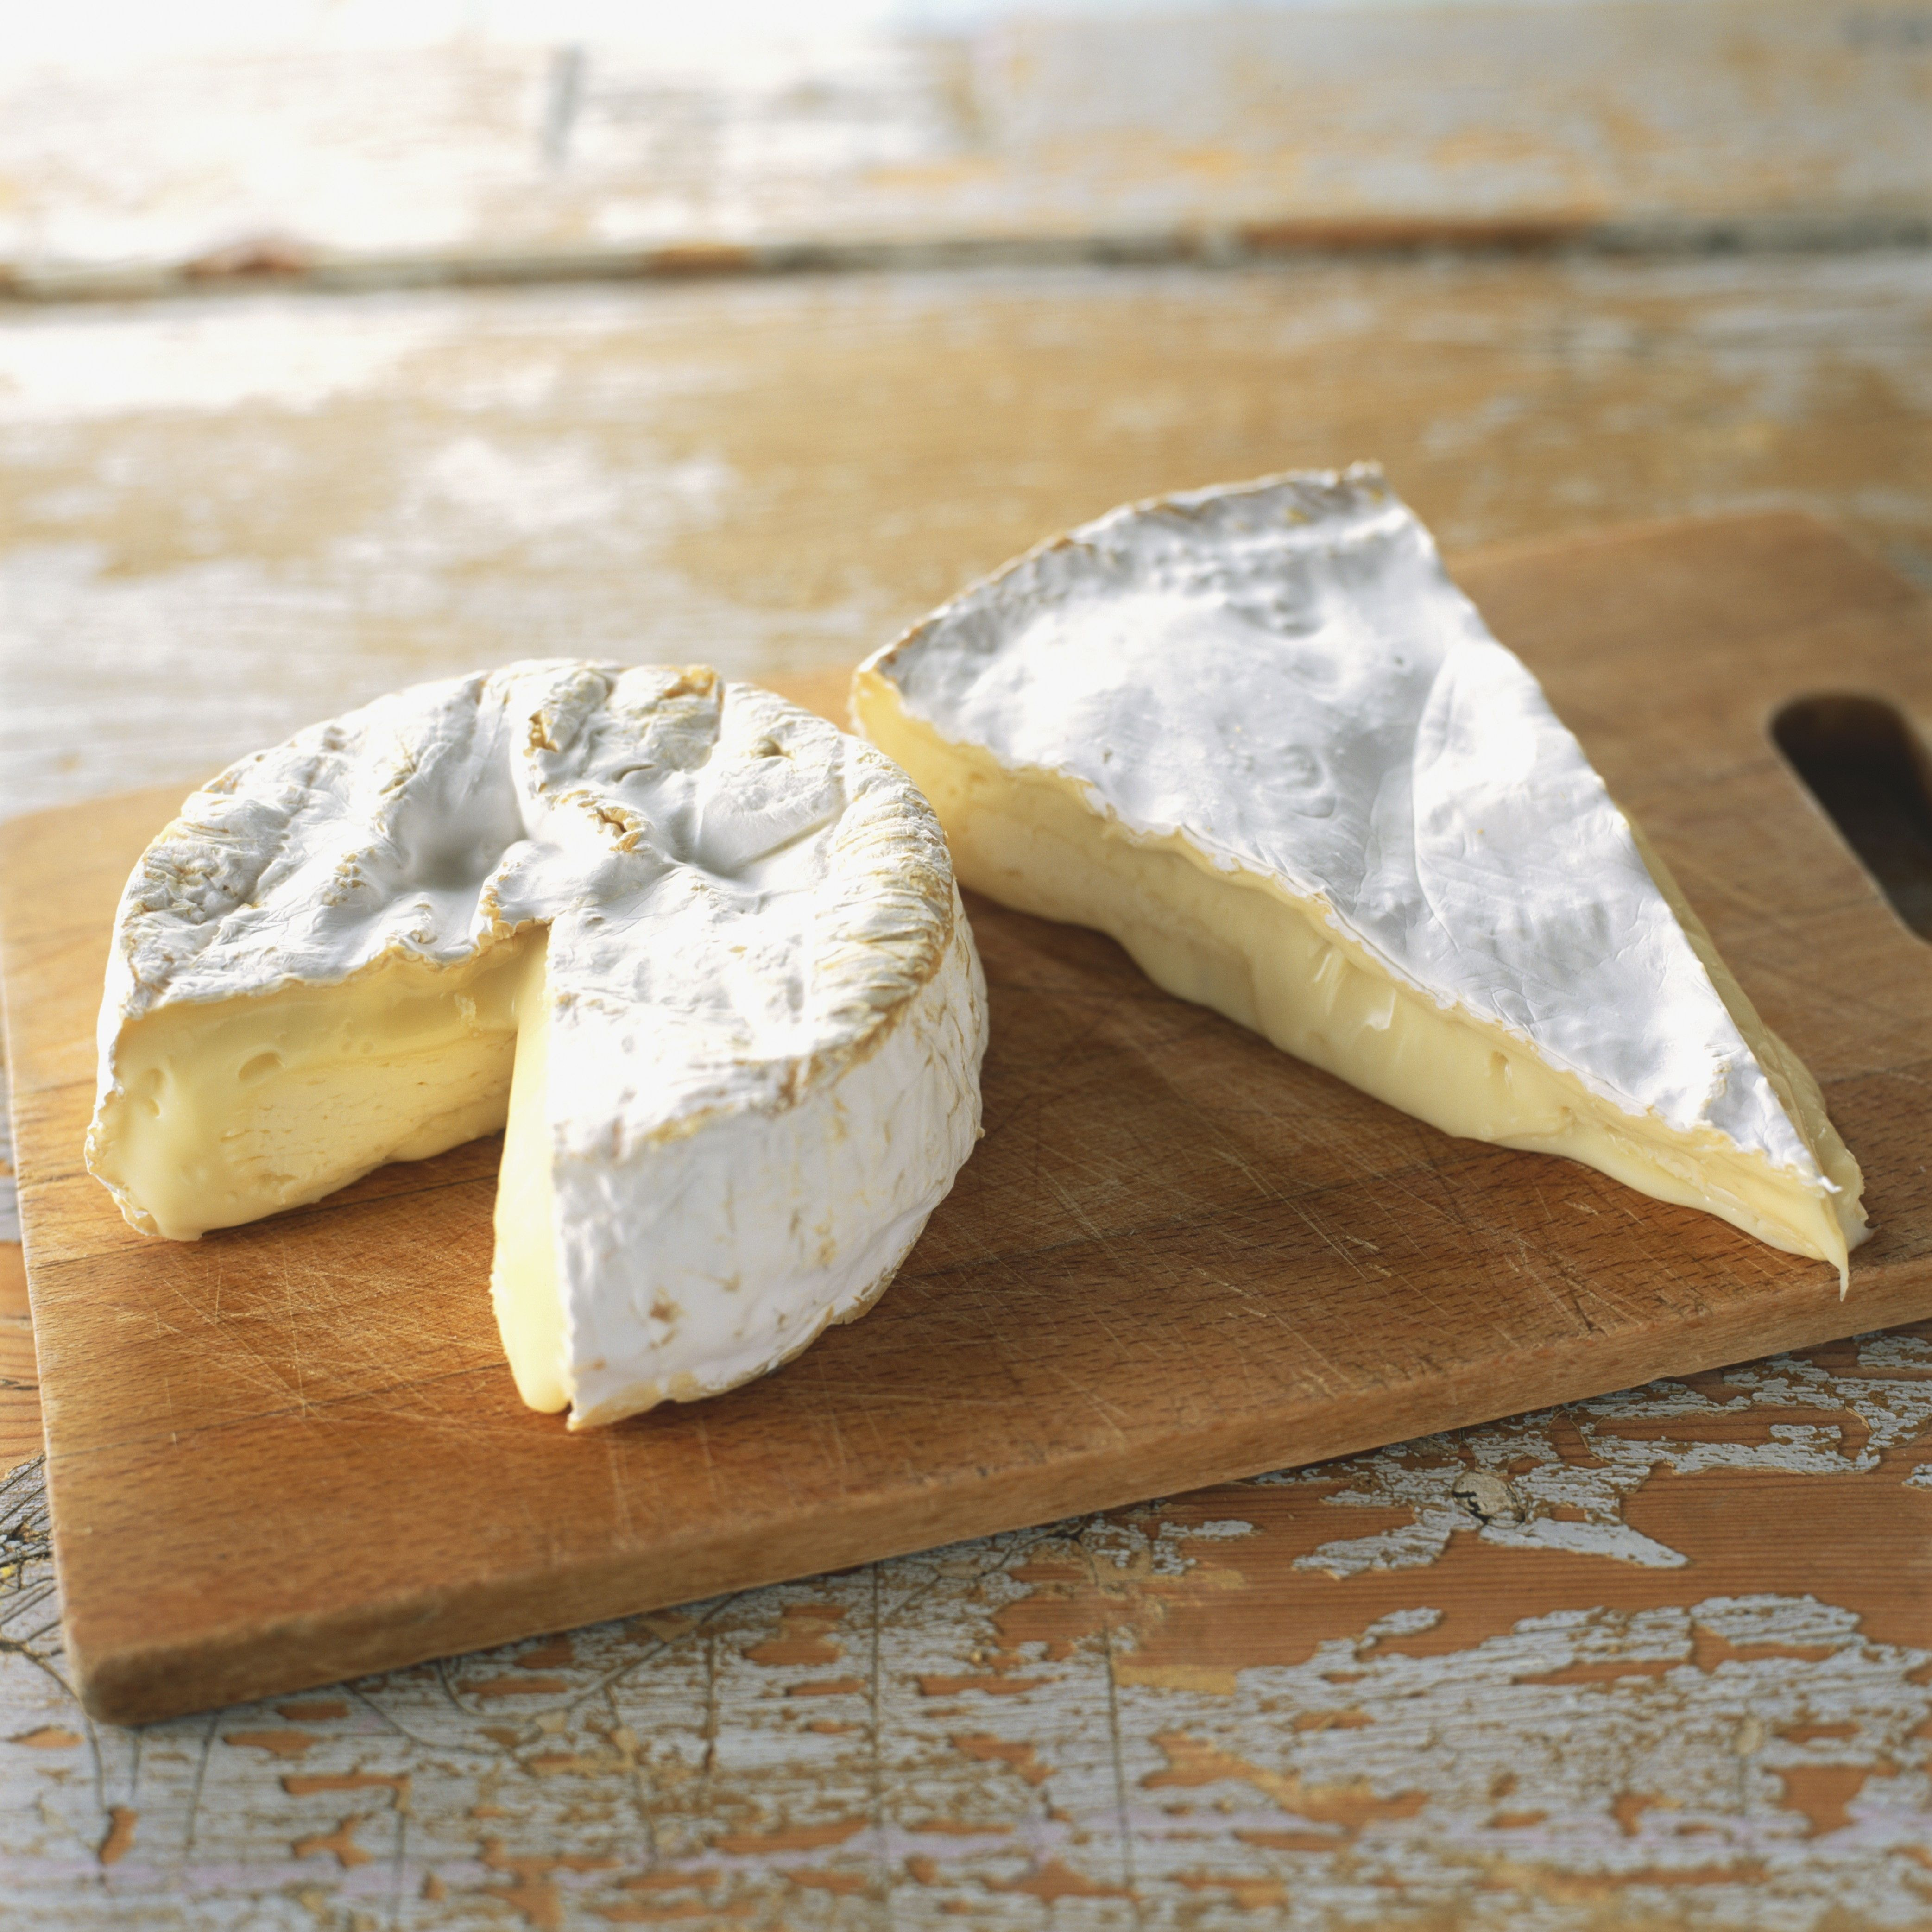 A round of Camembert cheese and slice of Brie